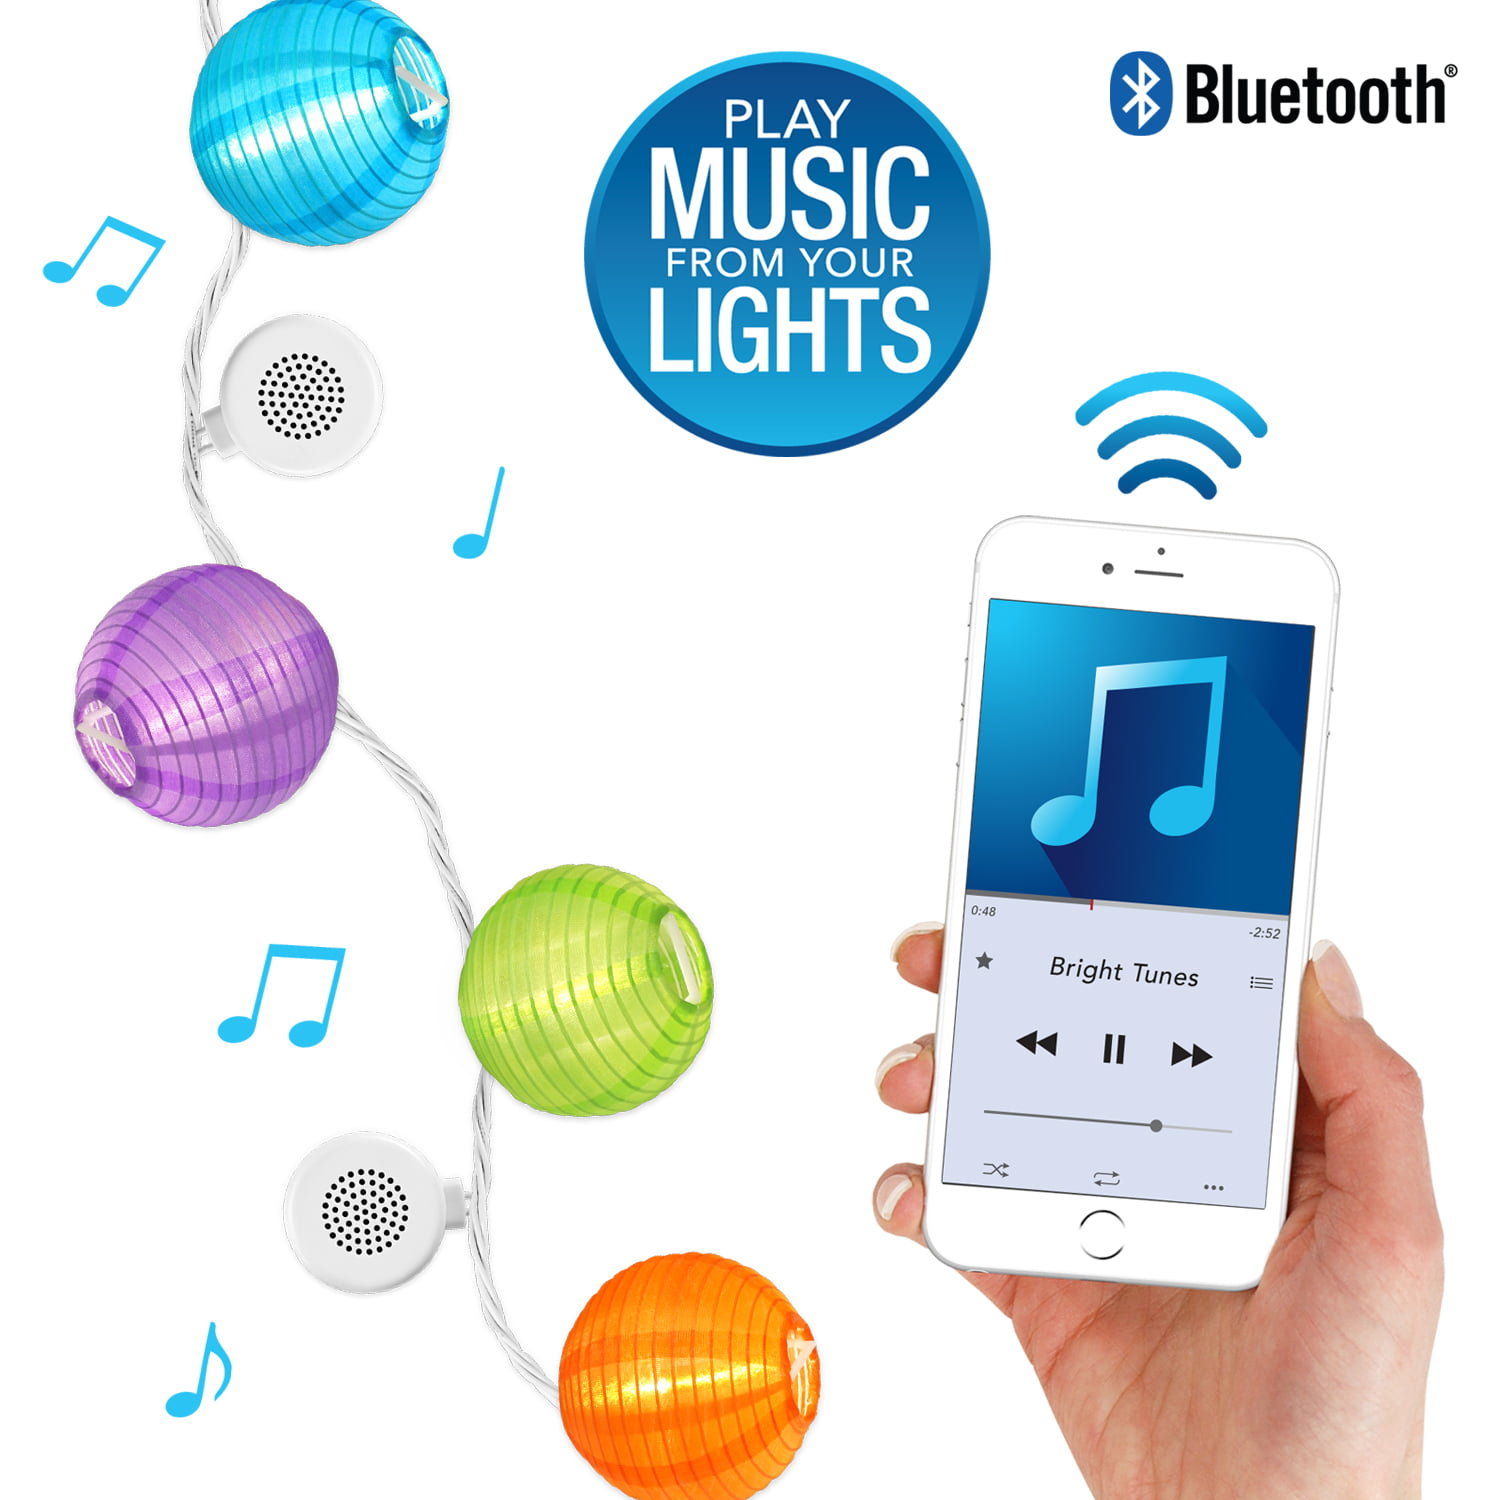 Bright Tunes Indoor Outdoor White LED's with Decorative Nylon Lanterns String Lights with Bluetooth Speakers, White Cord by Innovative Technology